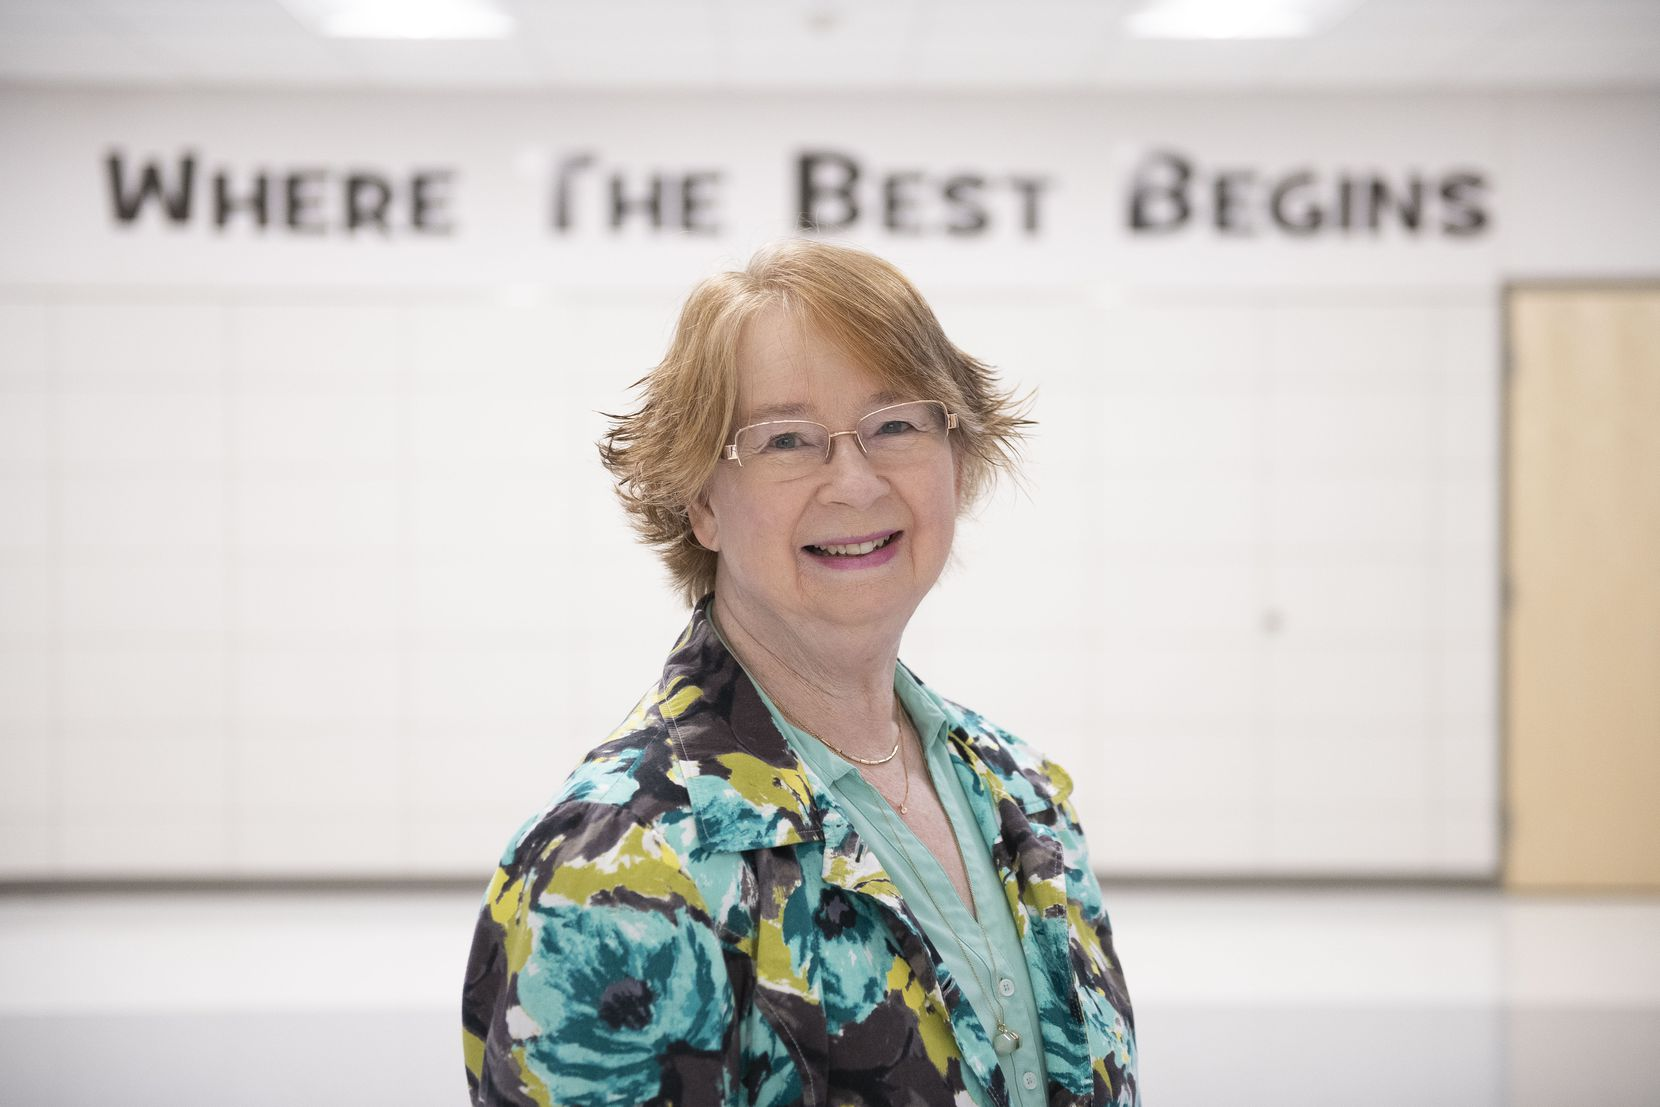 Louise Weaver, who is retiring this year after a 50-year career as an educator in Mesquite, stands in front of Rutherford Elementary School, her final stop after teaching in several Mesquite ISD schools.